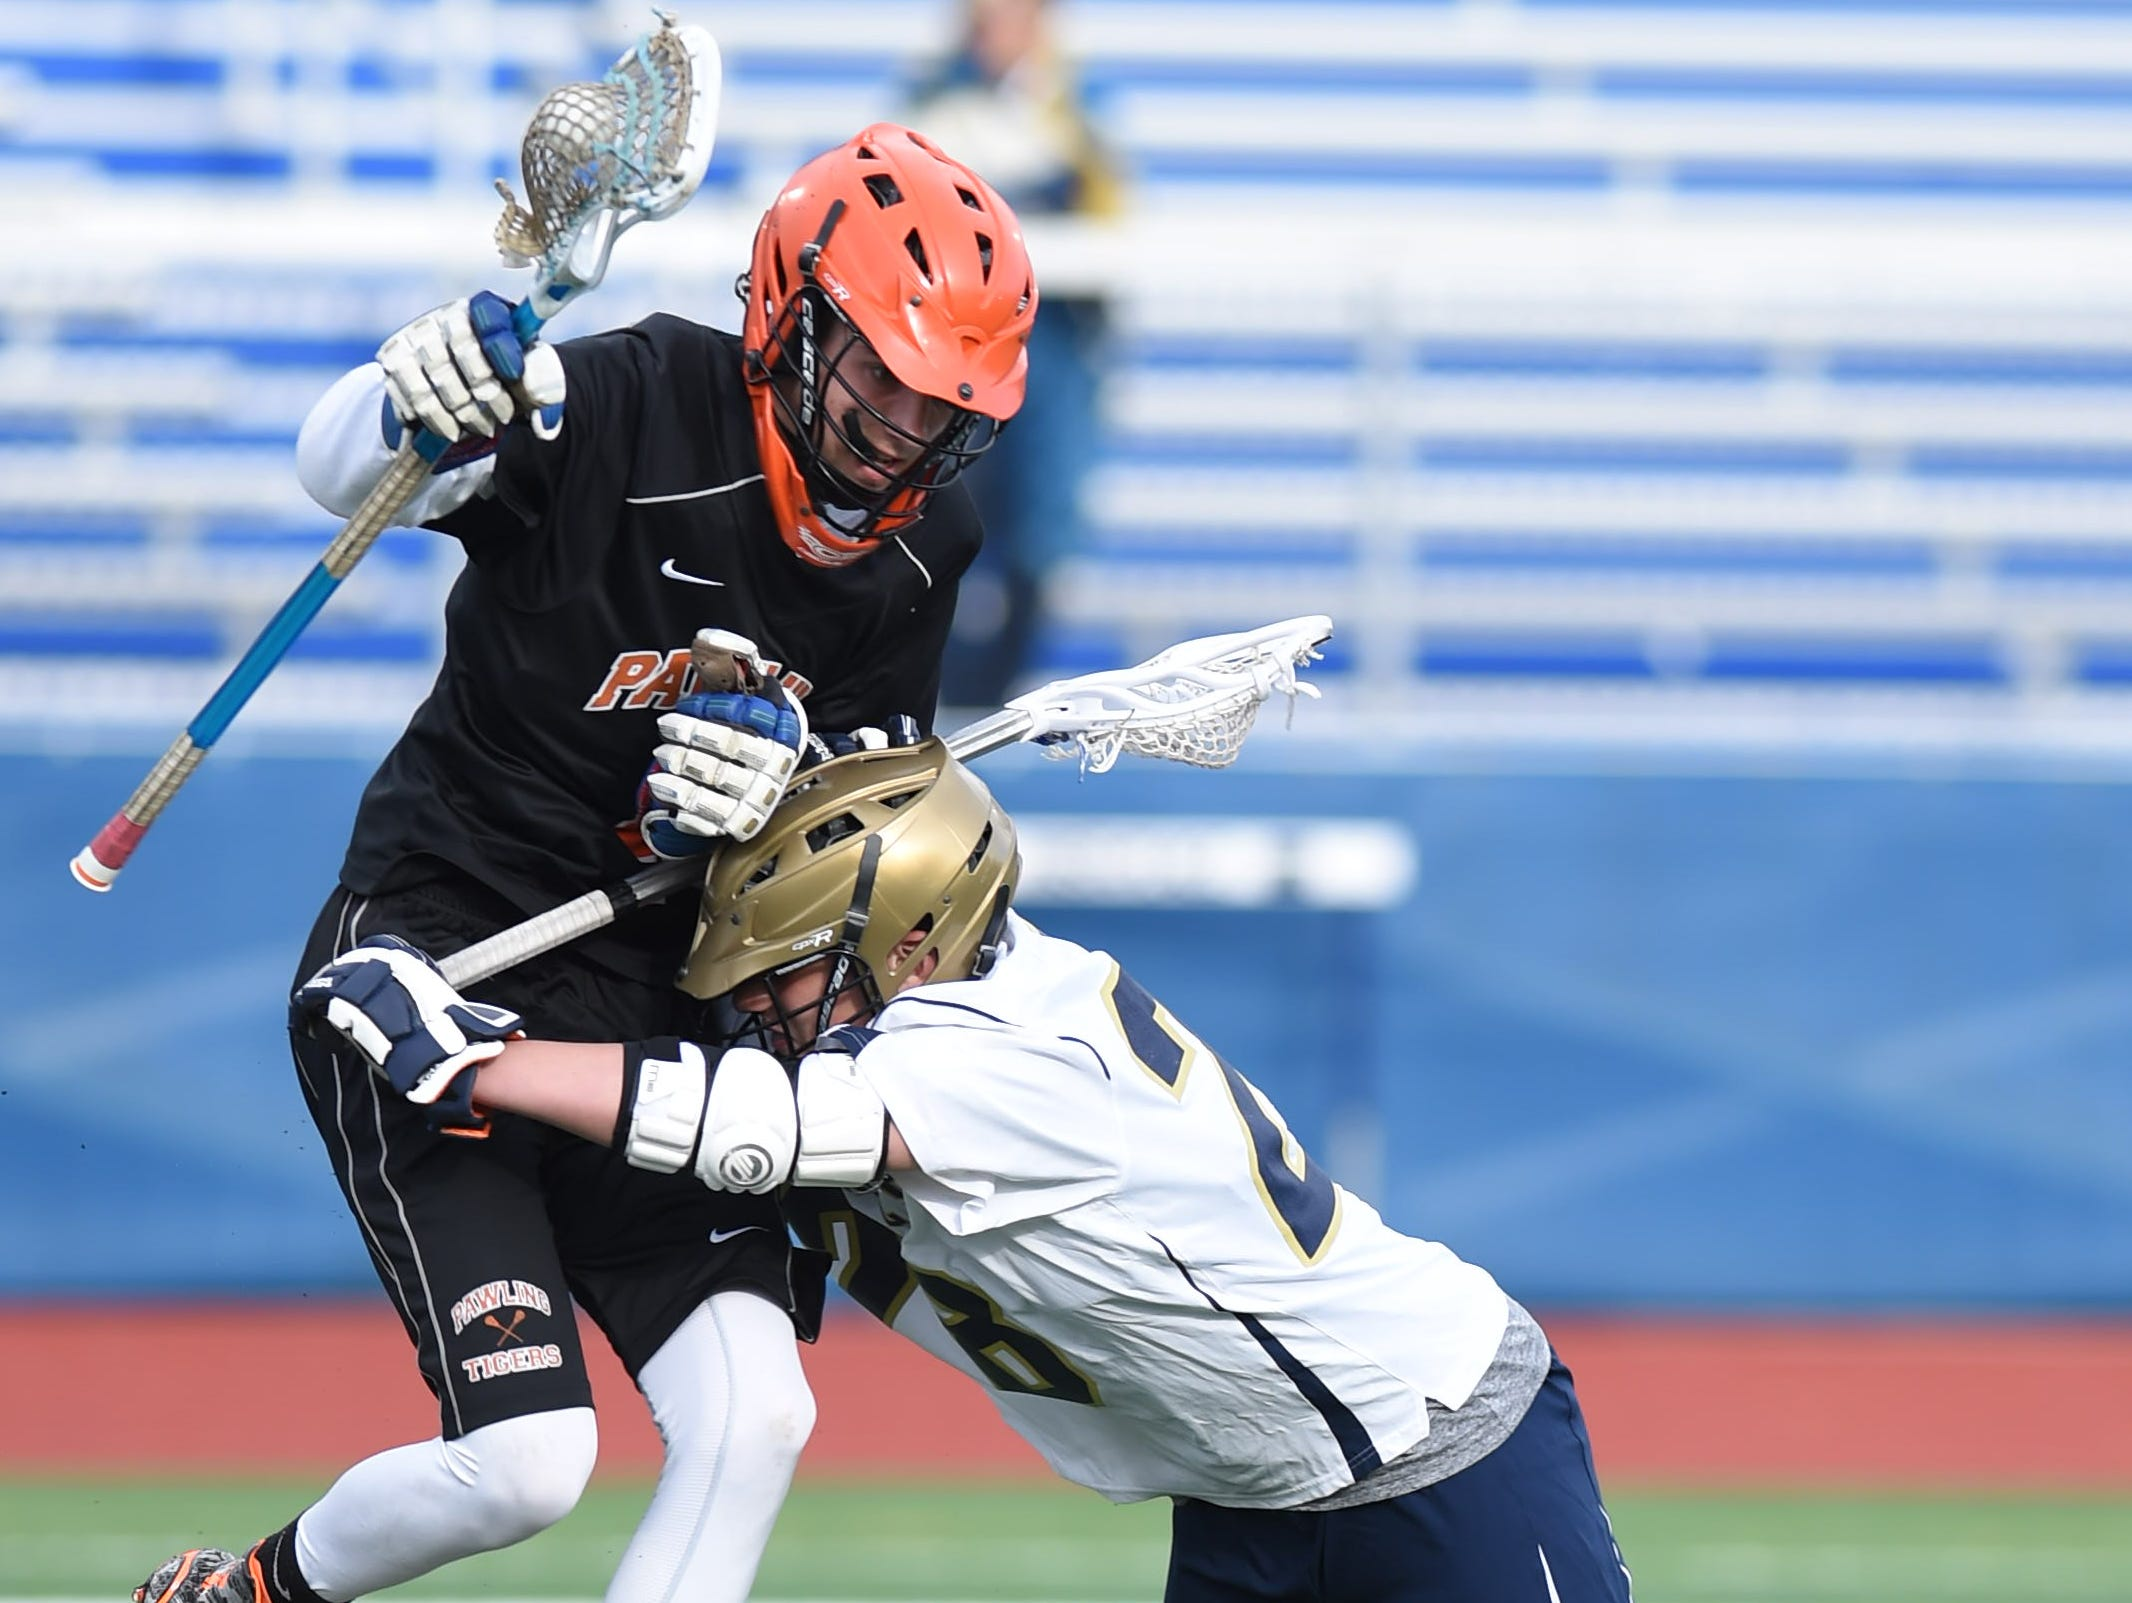 Lourdes' Adam Breault blocks on Pawling's James Comerford during Thursday's game at Lourdes.